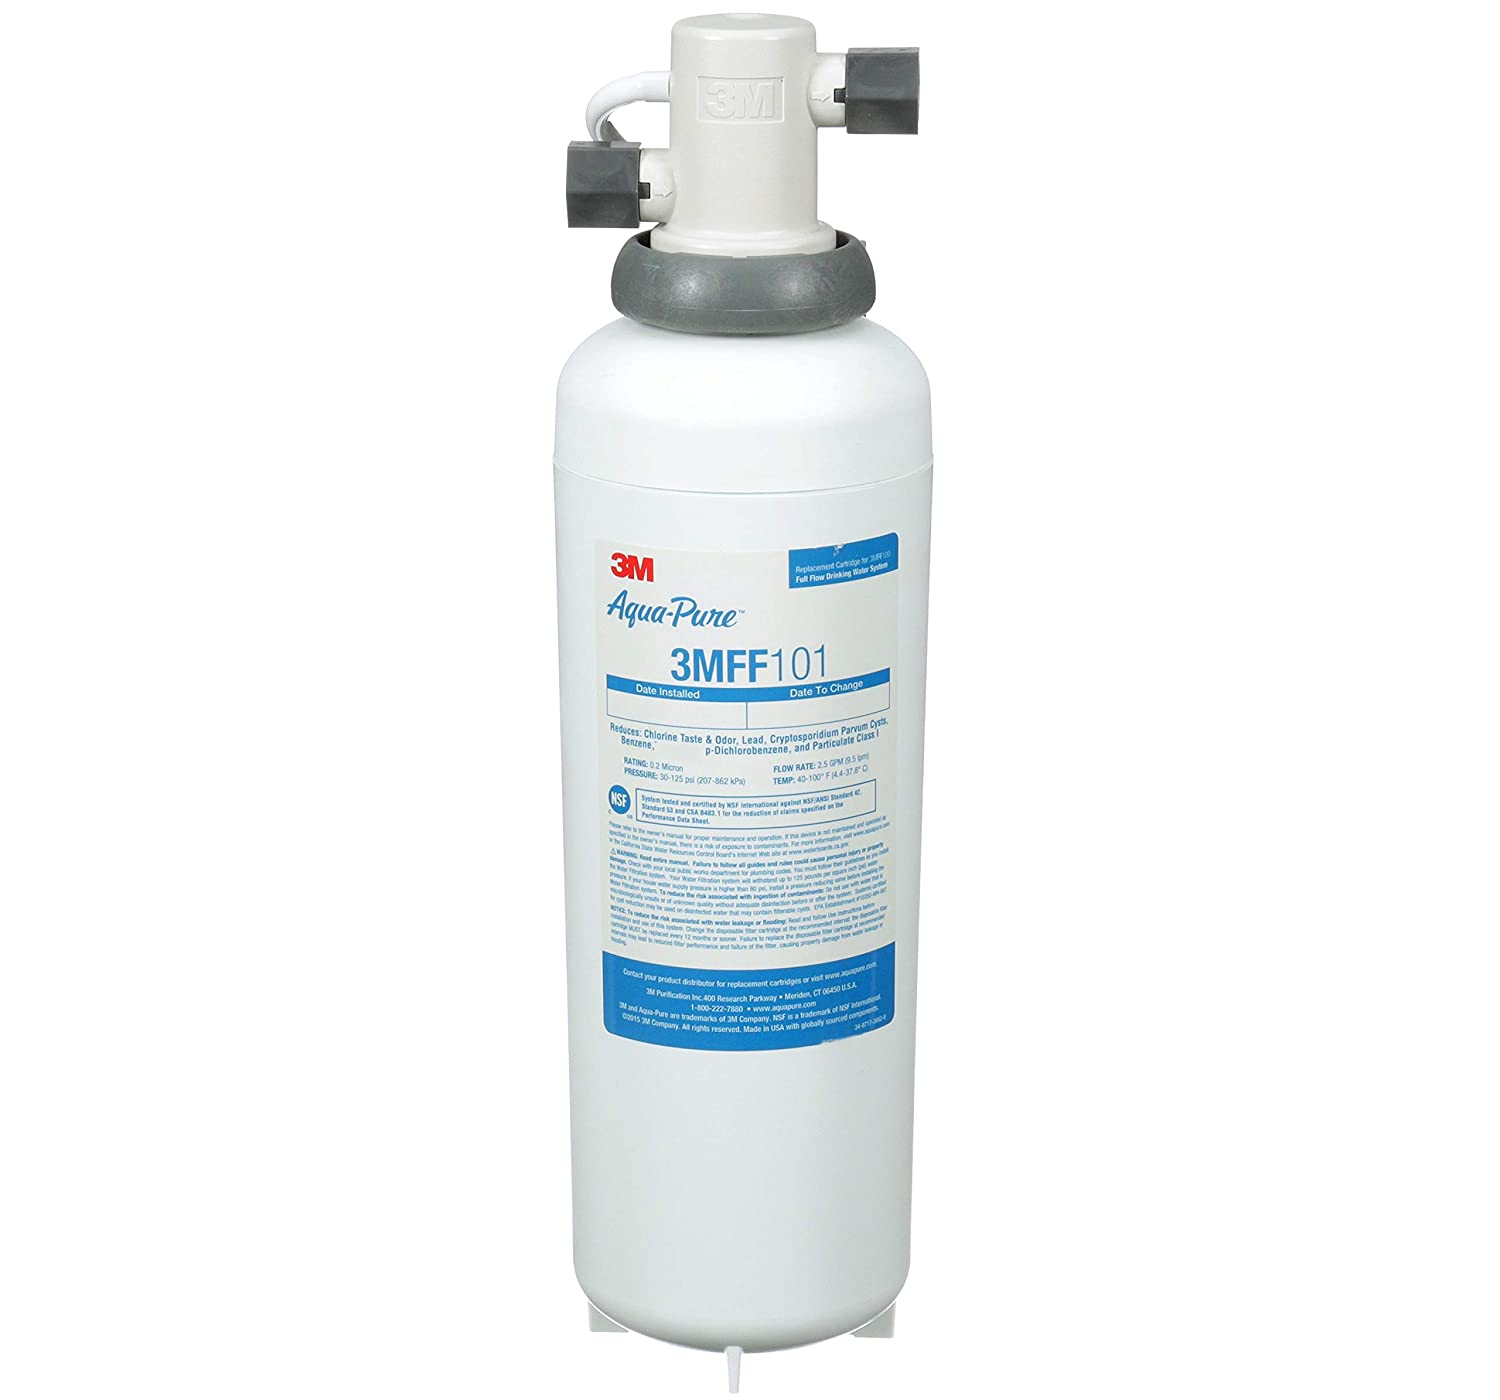 3M Aqua-Pure 3MFF100 Under Sink Water Filter